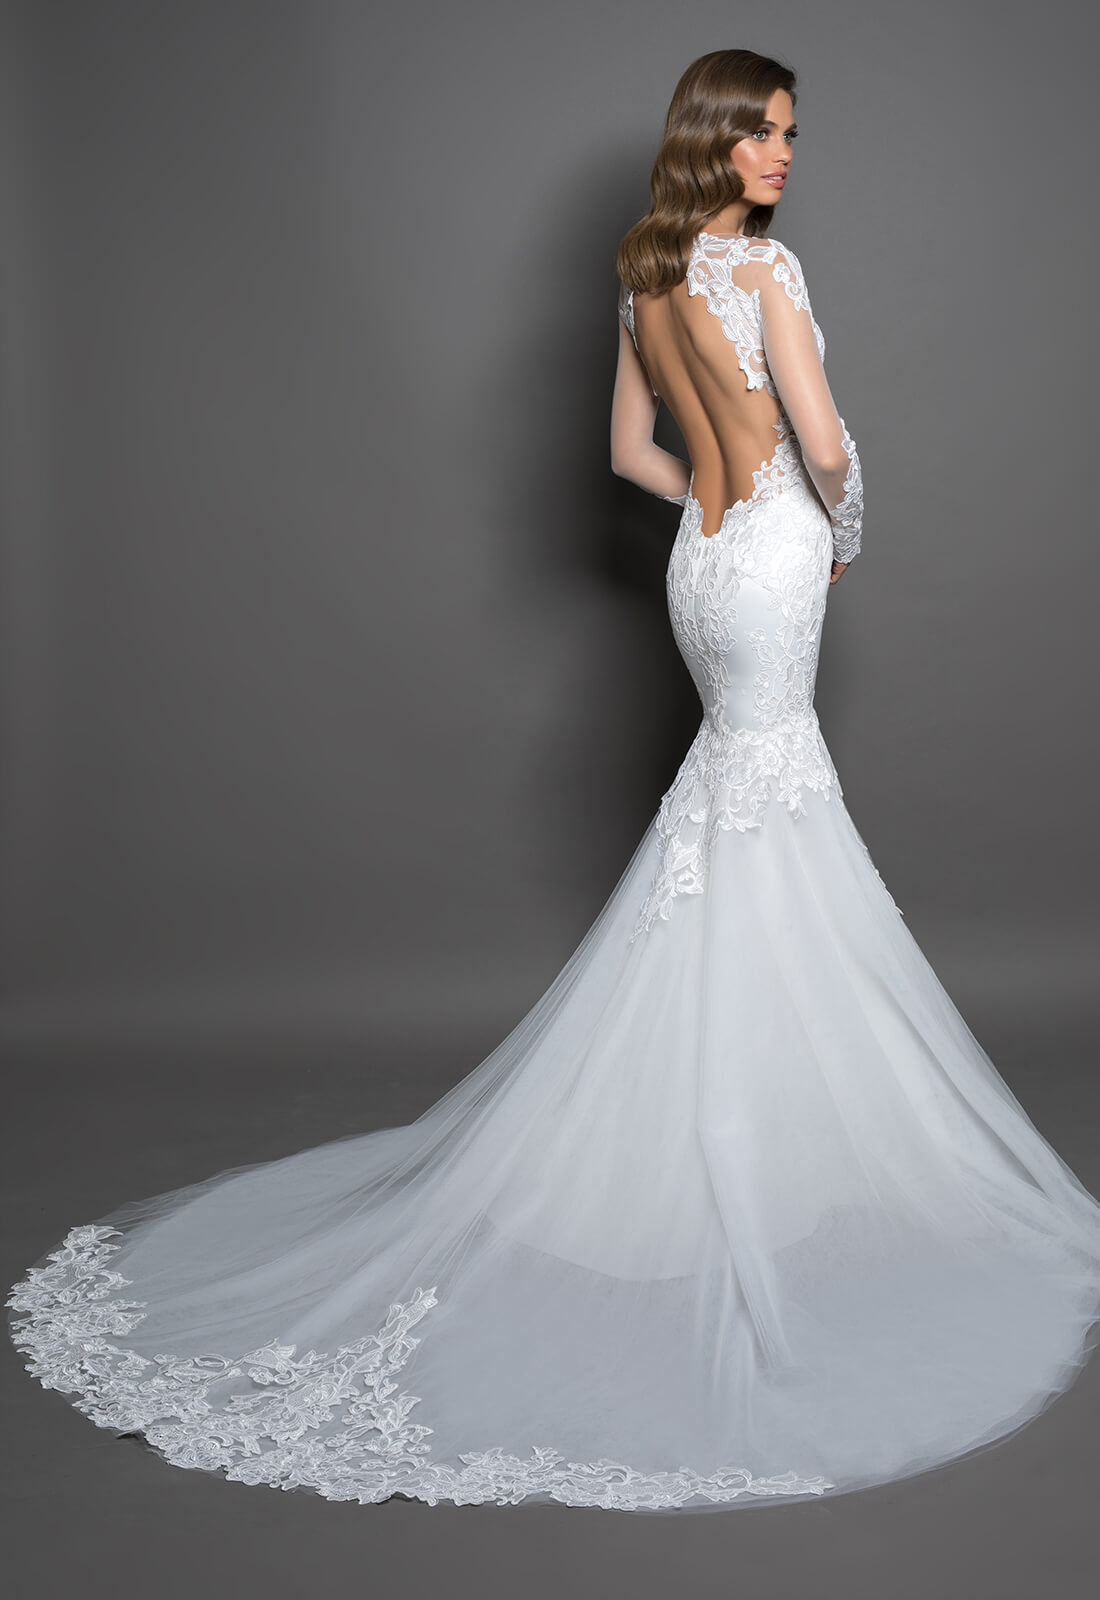 Long Sleeve Mermaid Gown With Lace Detailing Kleinfeld